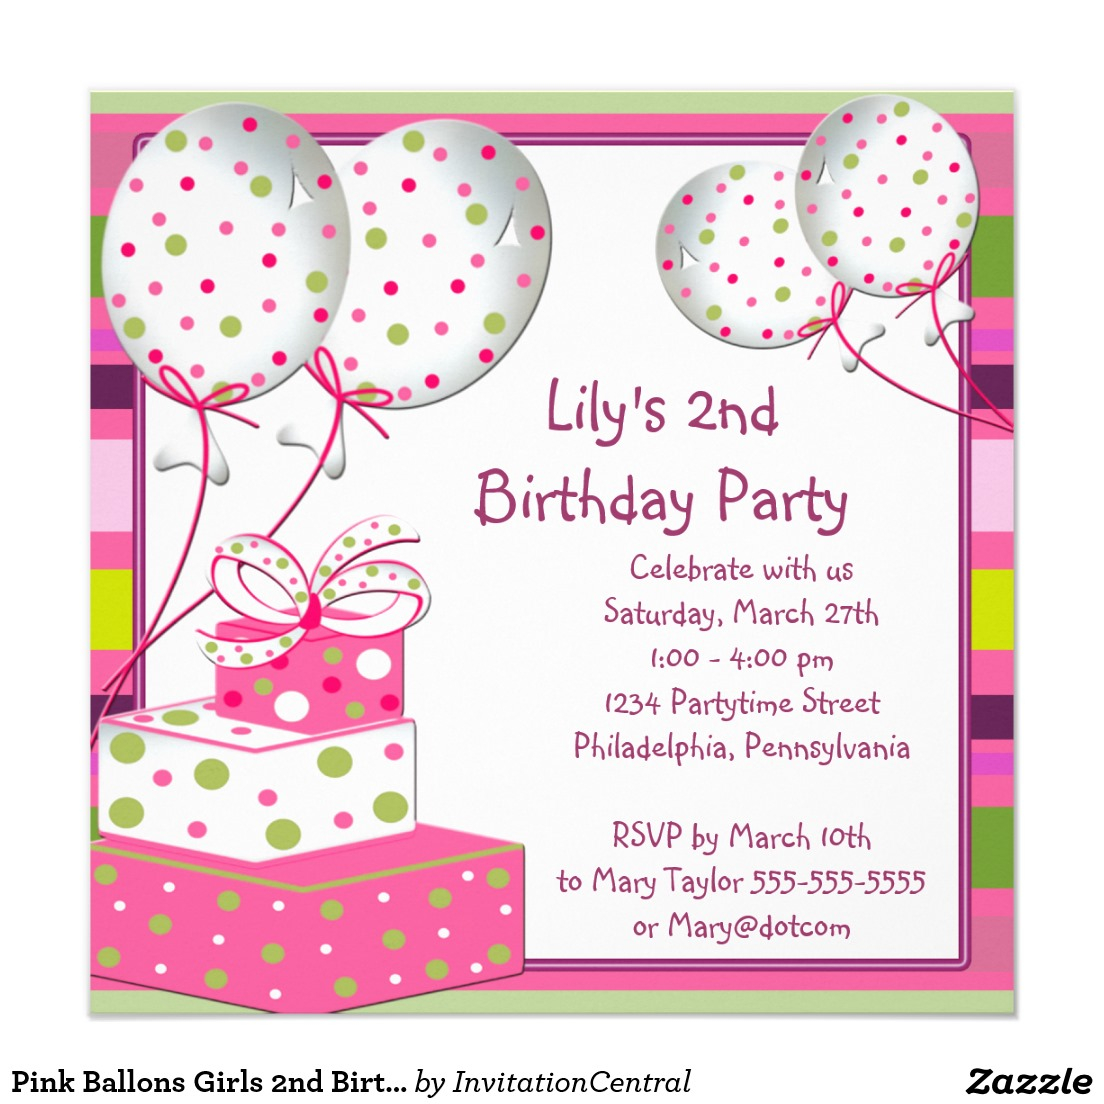 Handmade Birthday Invitation Cards Ideas Making Birthday Invitation Cards Birthday Invitation Examples